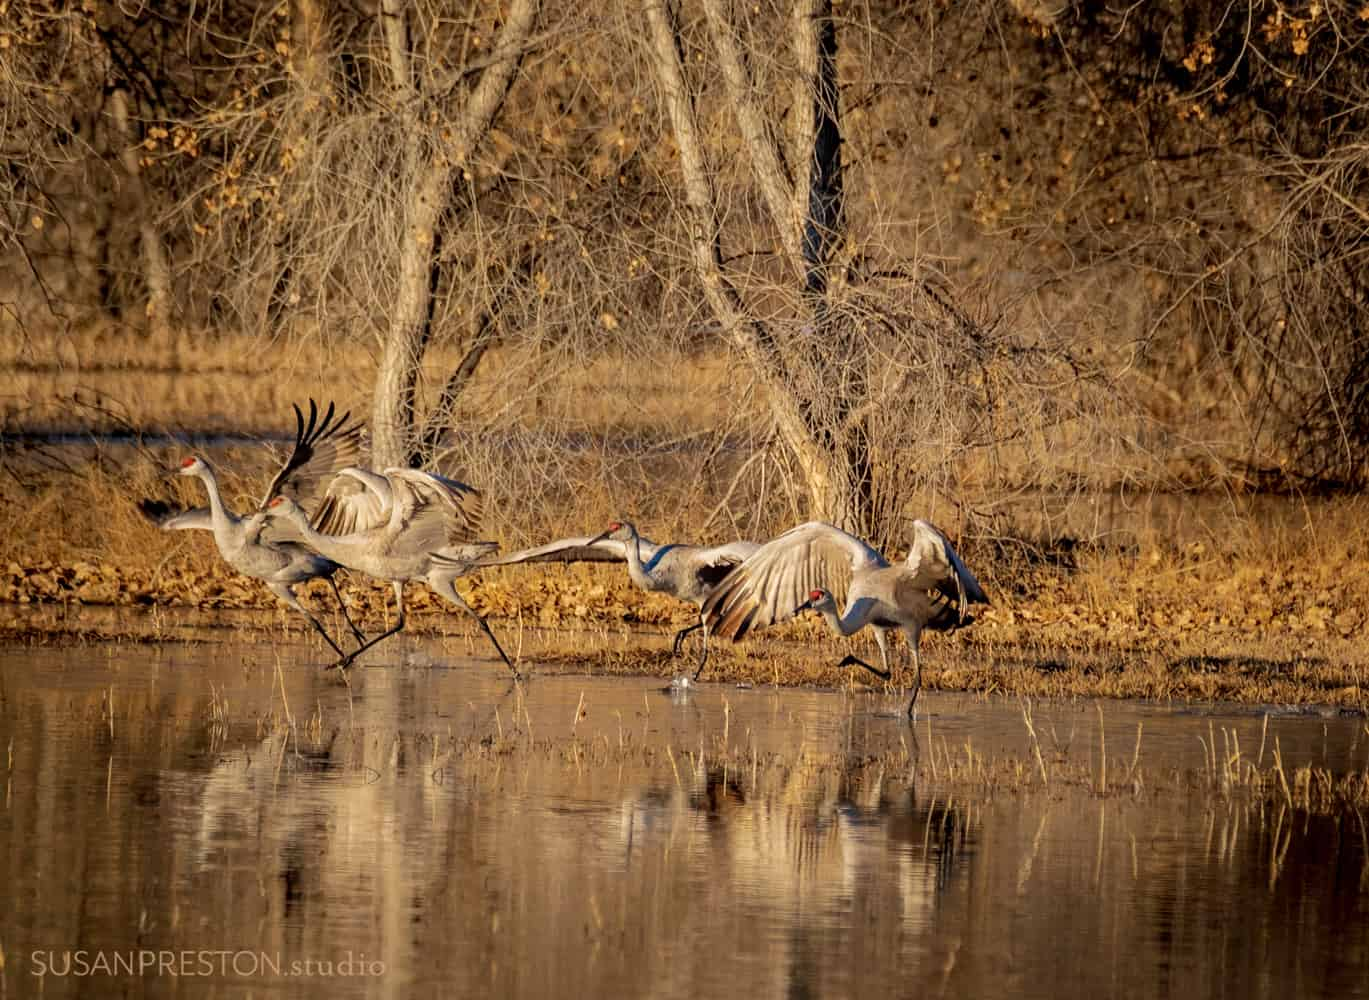 a family of sandhill cranes begin running across the water to take flight in the Bosque del Apache